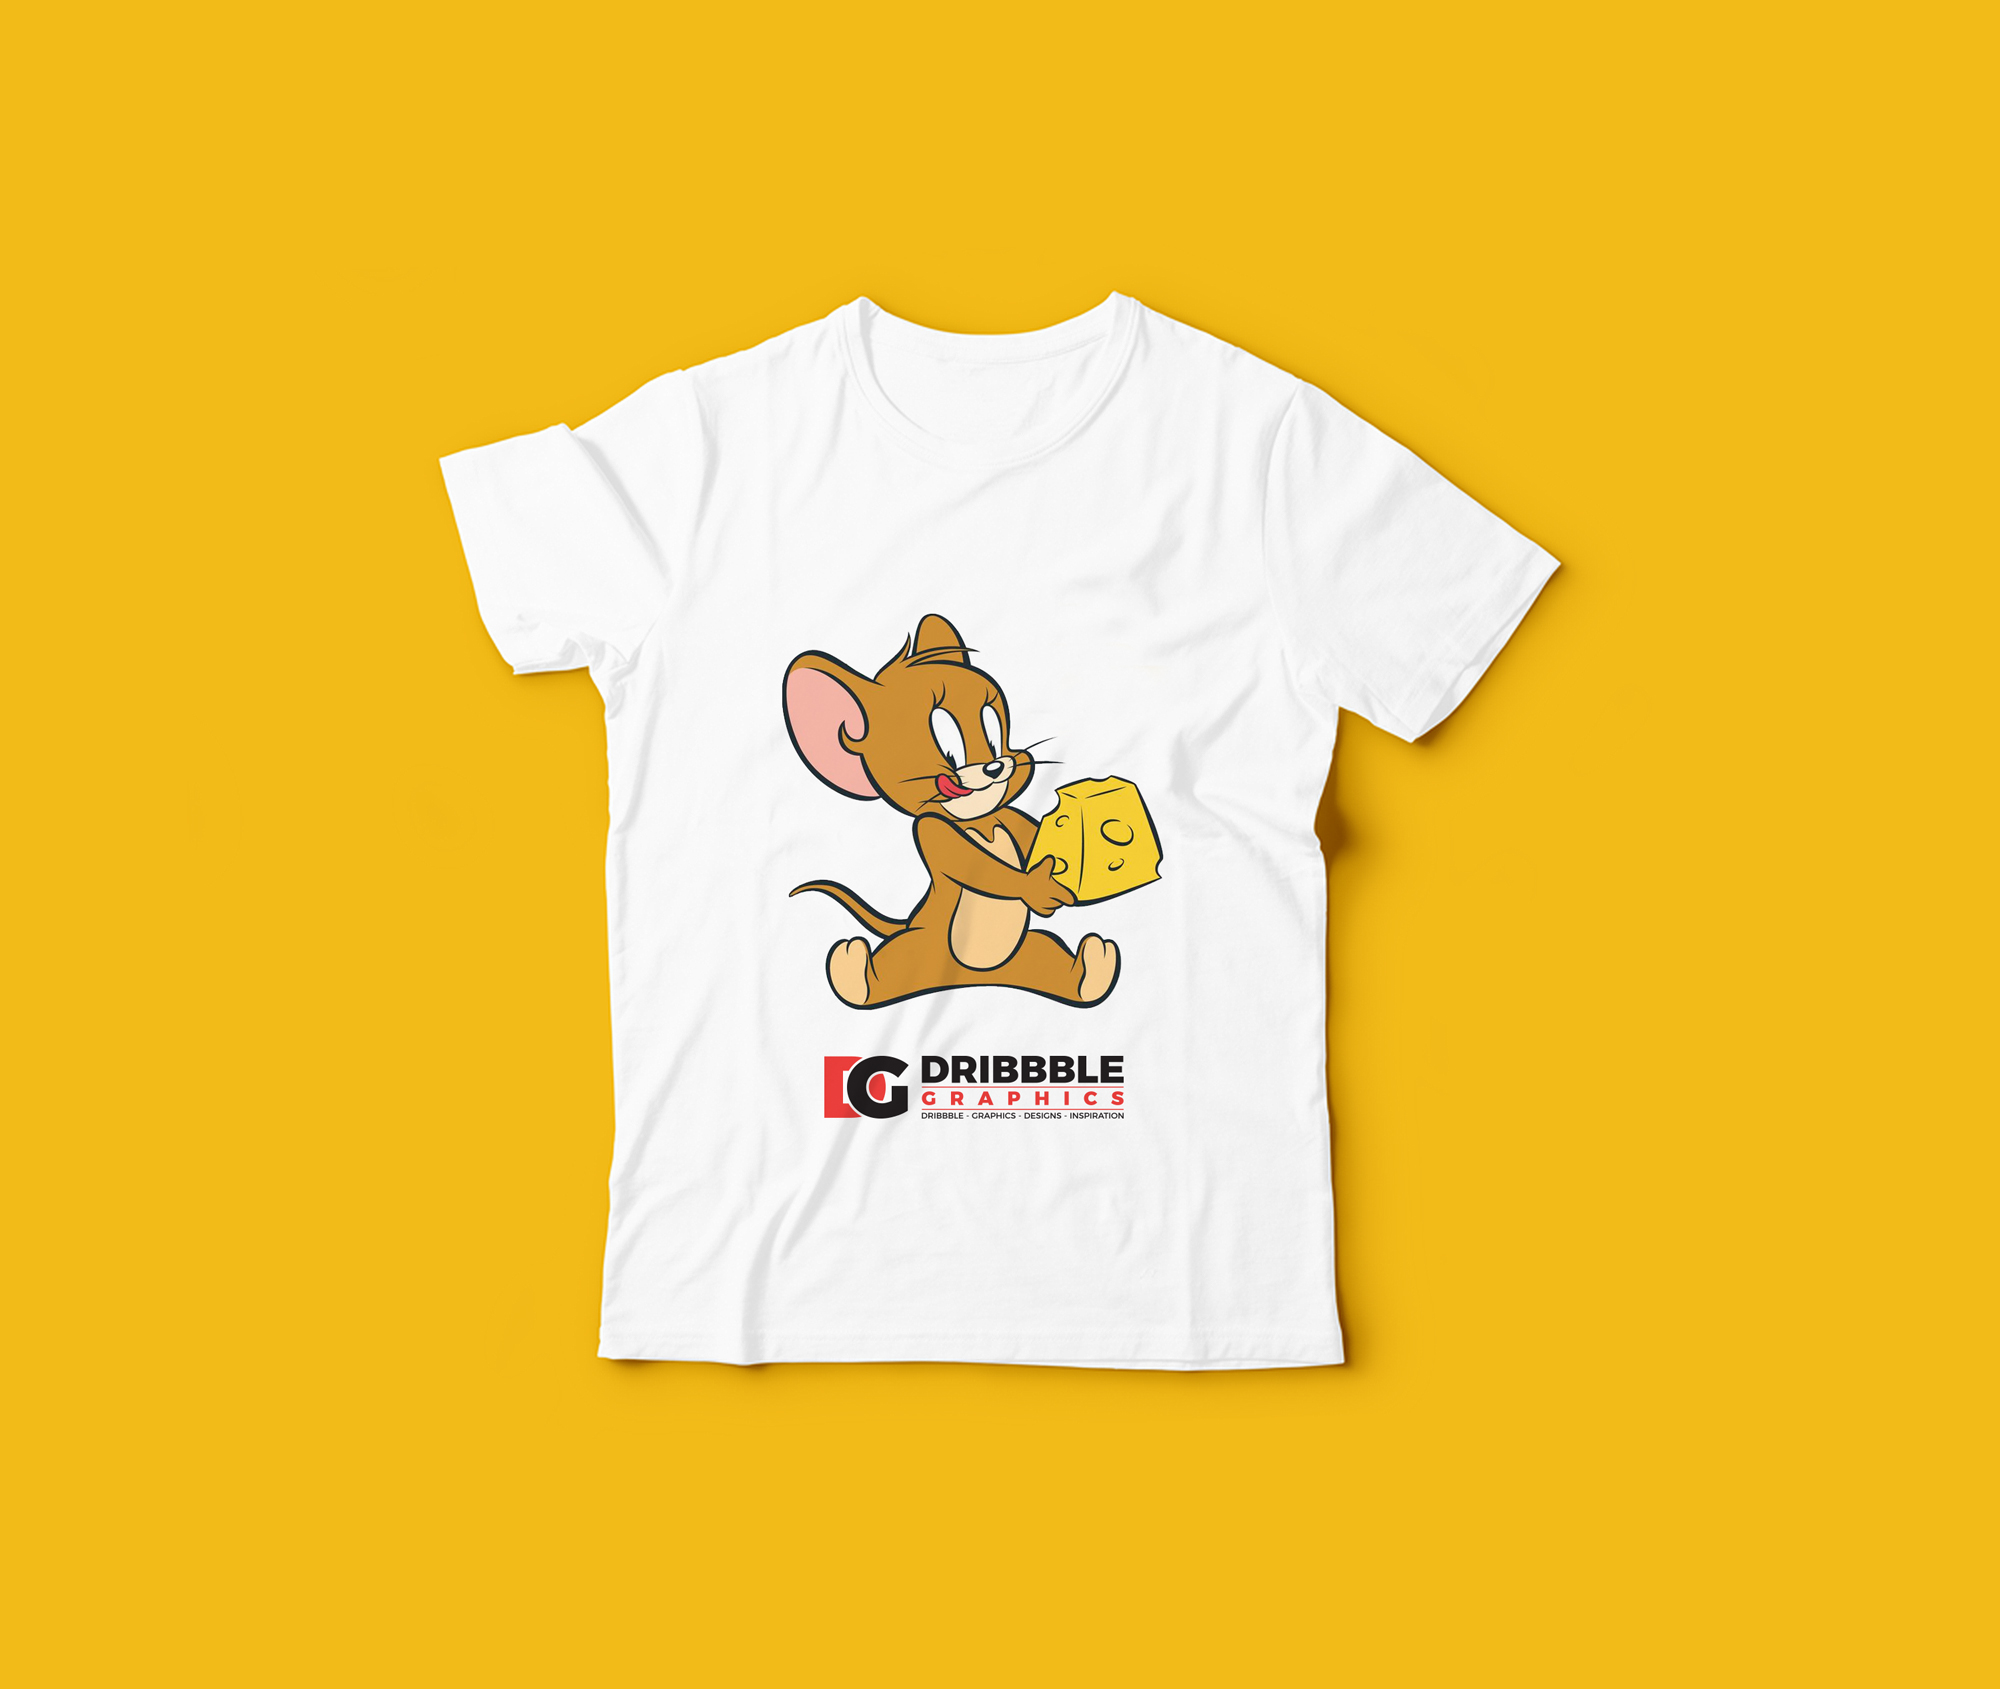 Free Kids T Shirt Mockup Dribbble Graphics